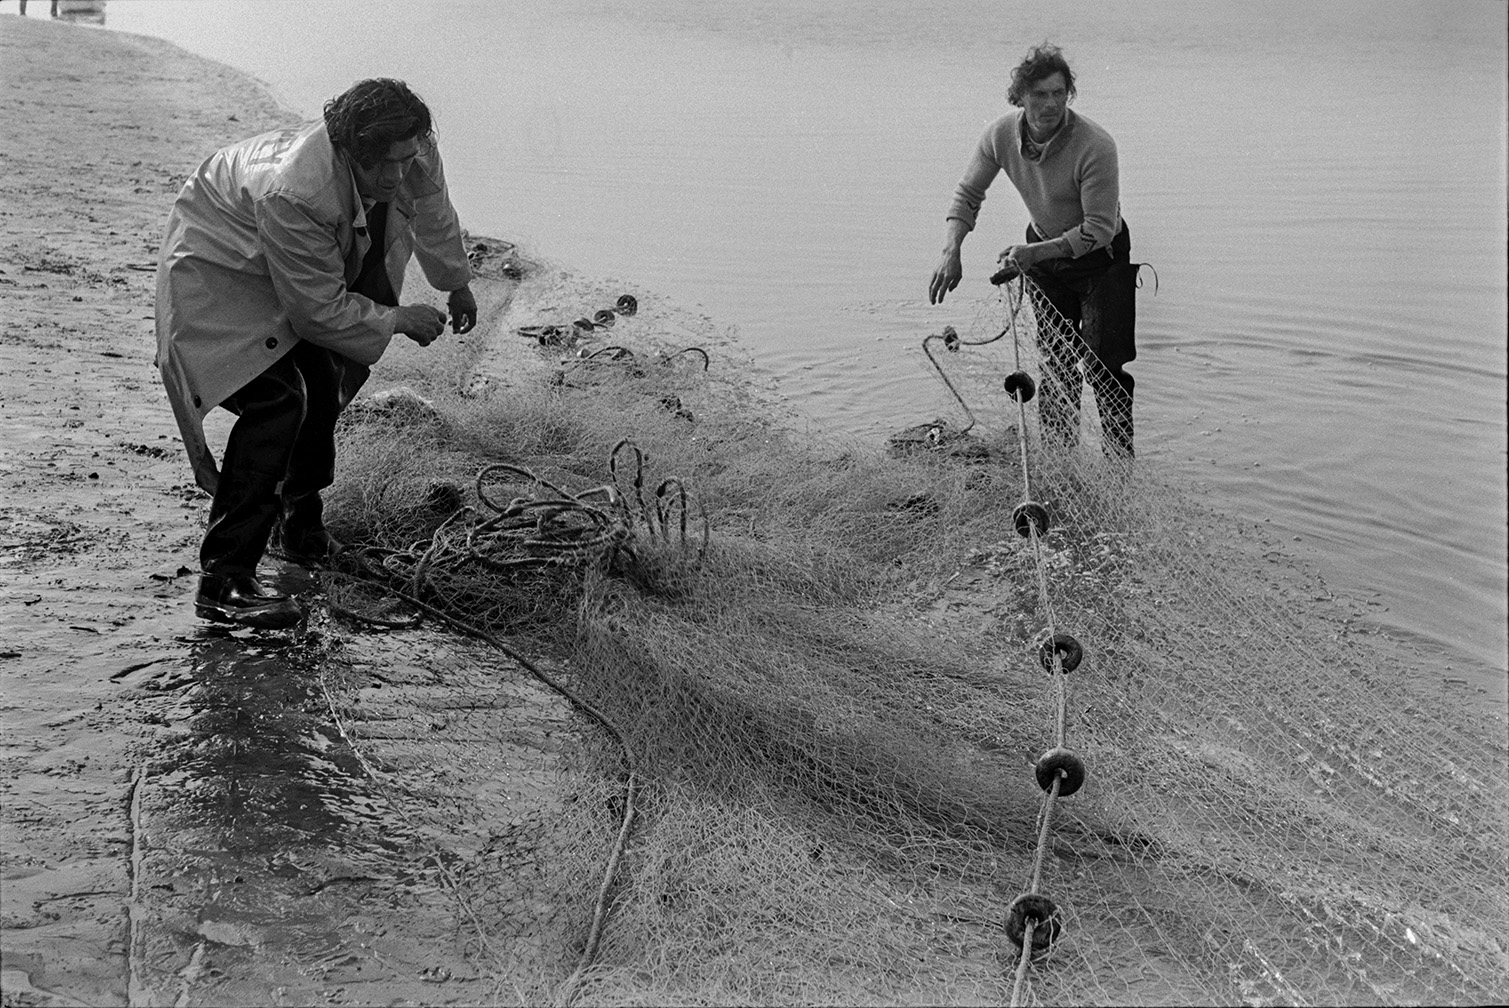 Two men hauling in a large fishing net, possibly at Appledore.